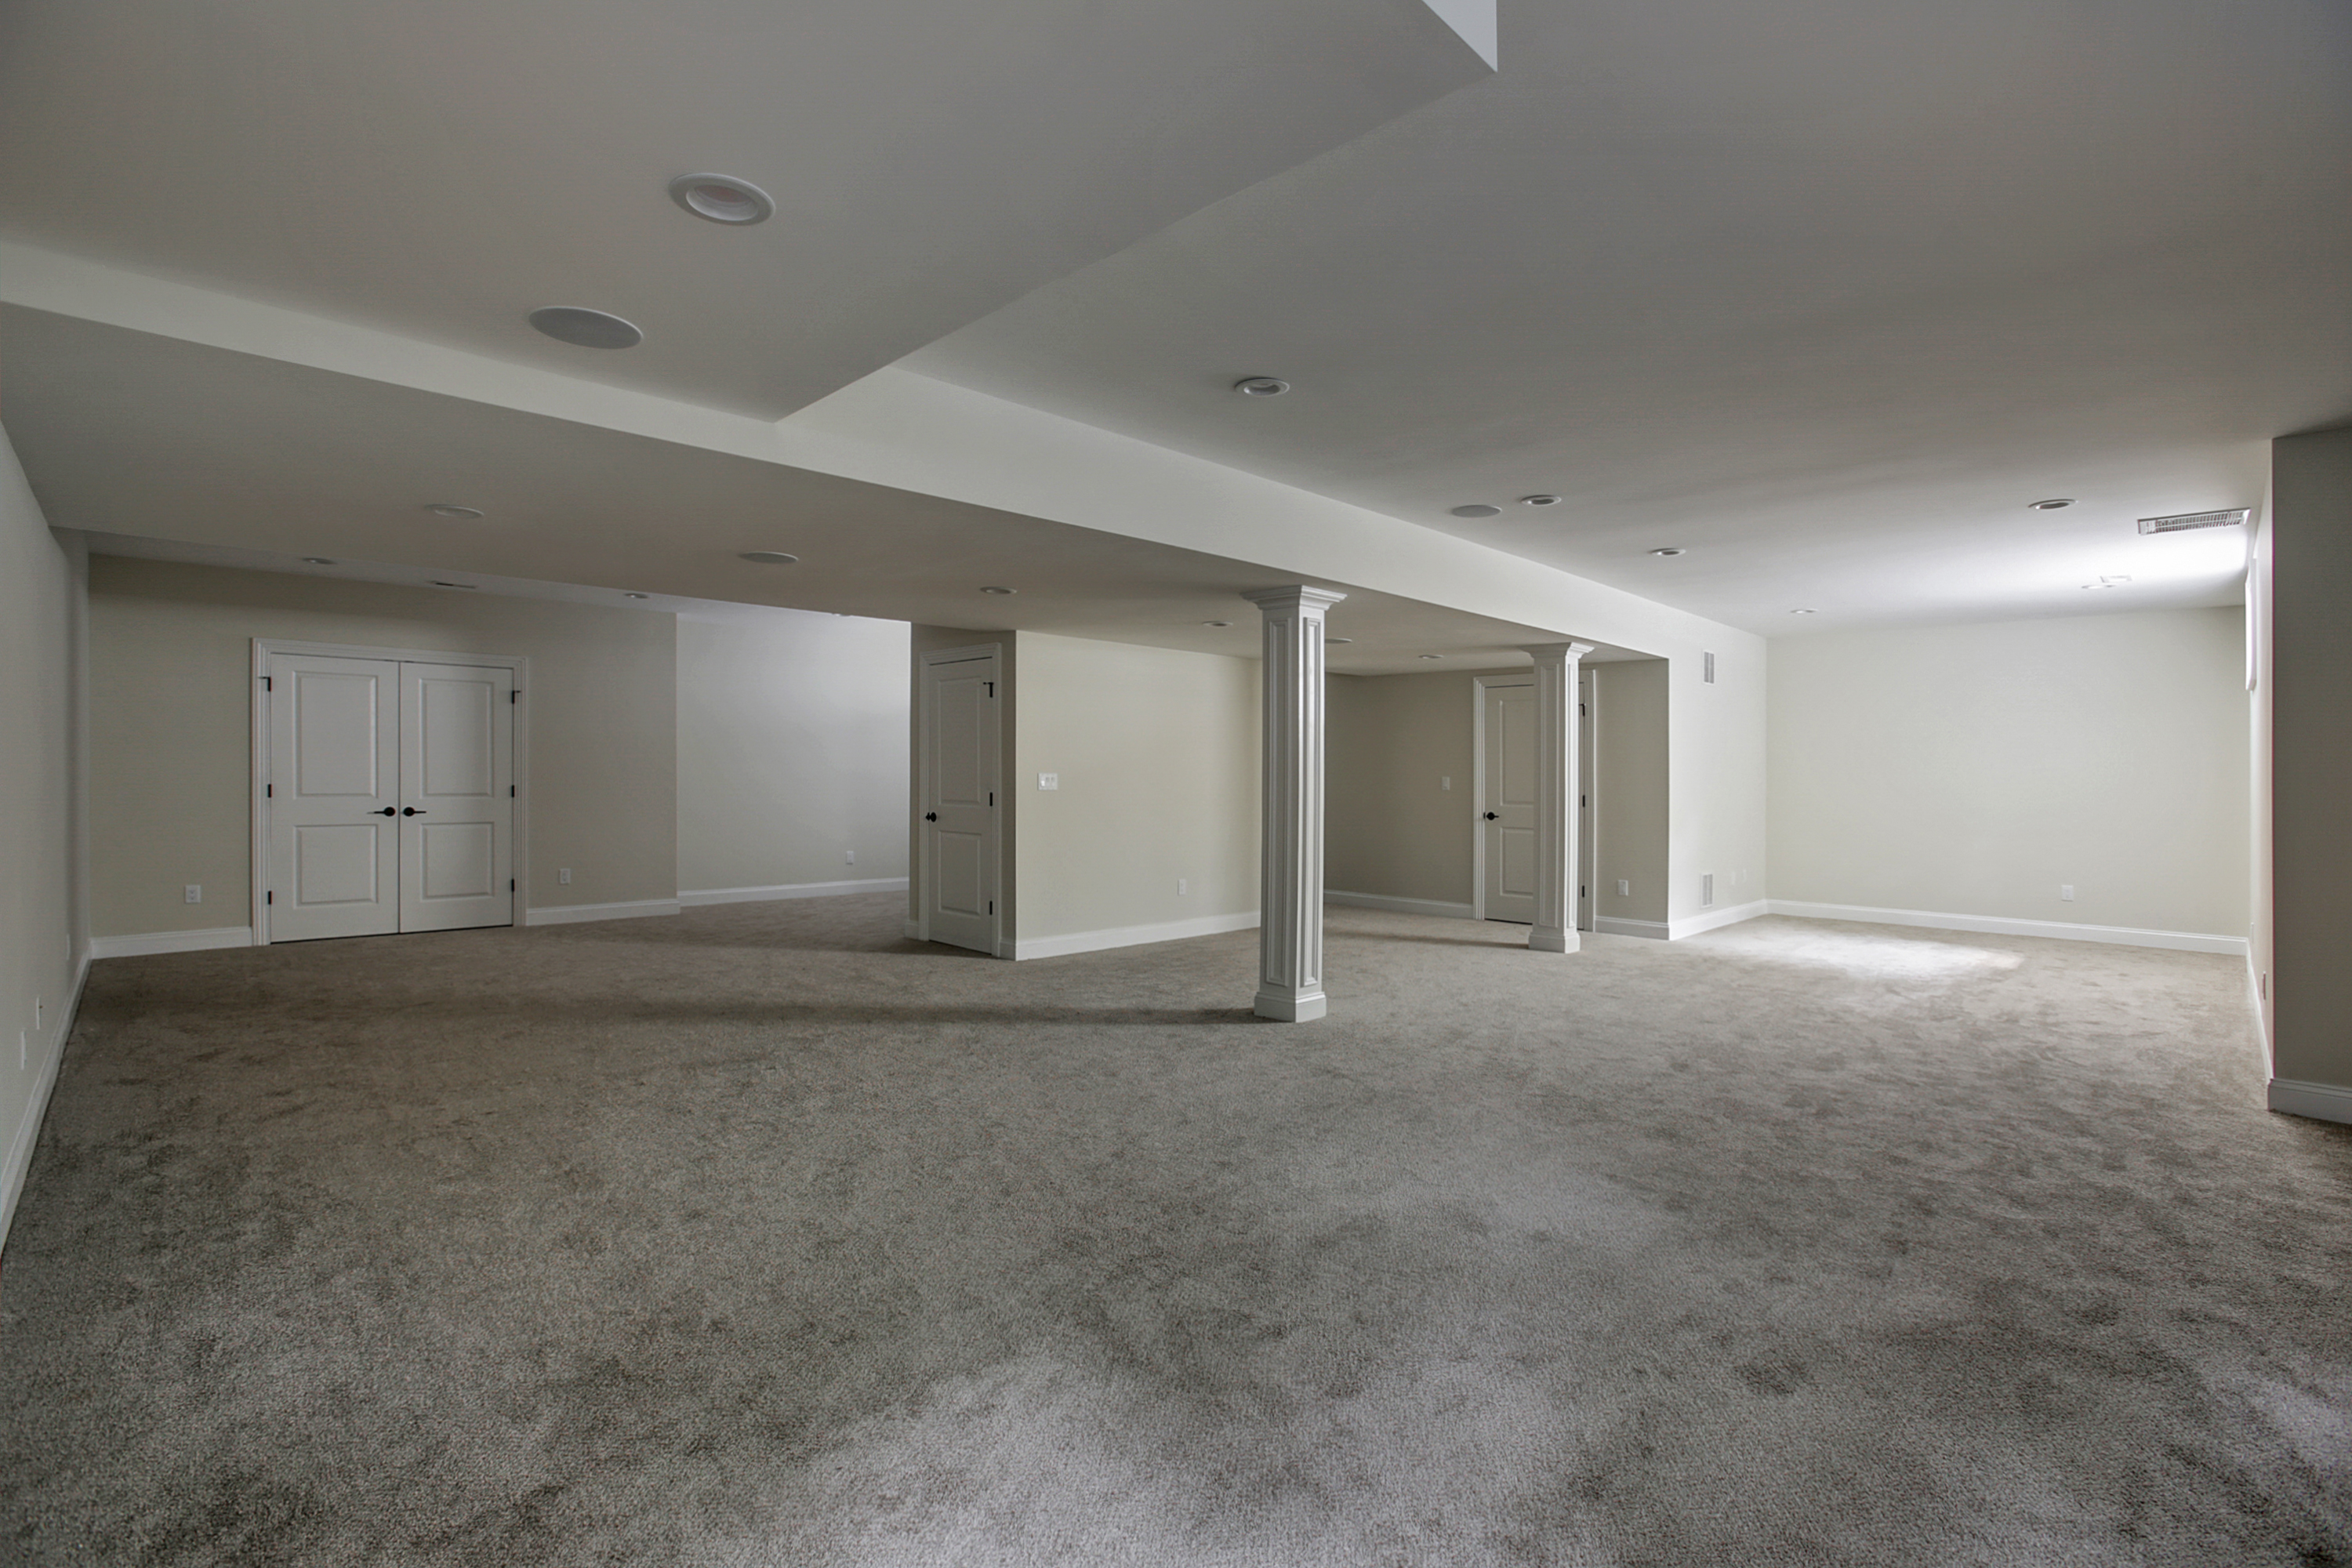 843 Nancy Way – Basement